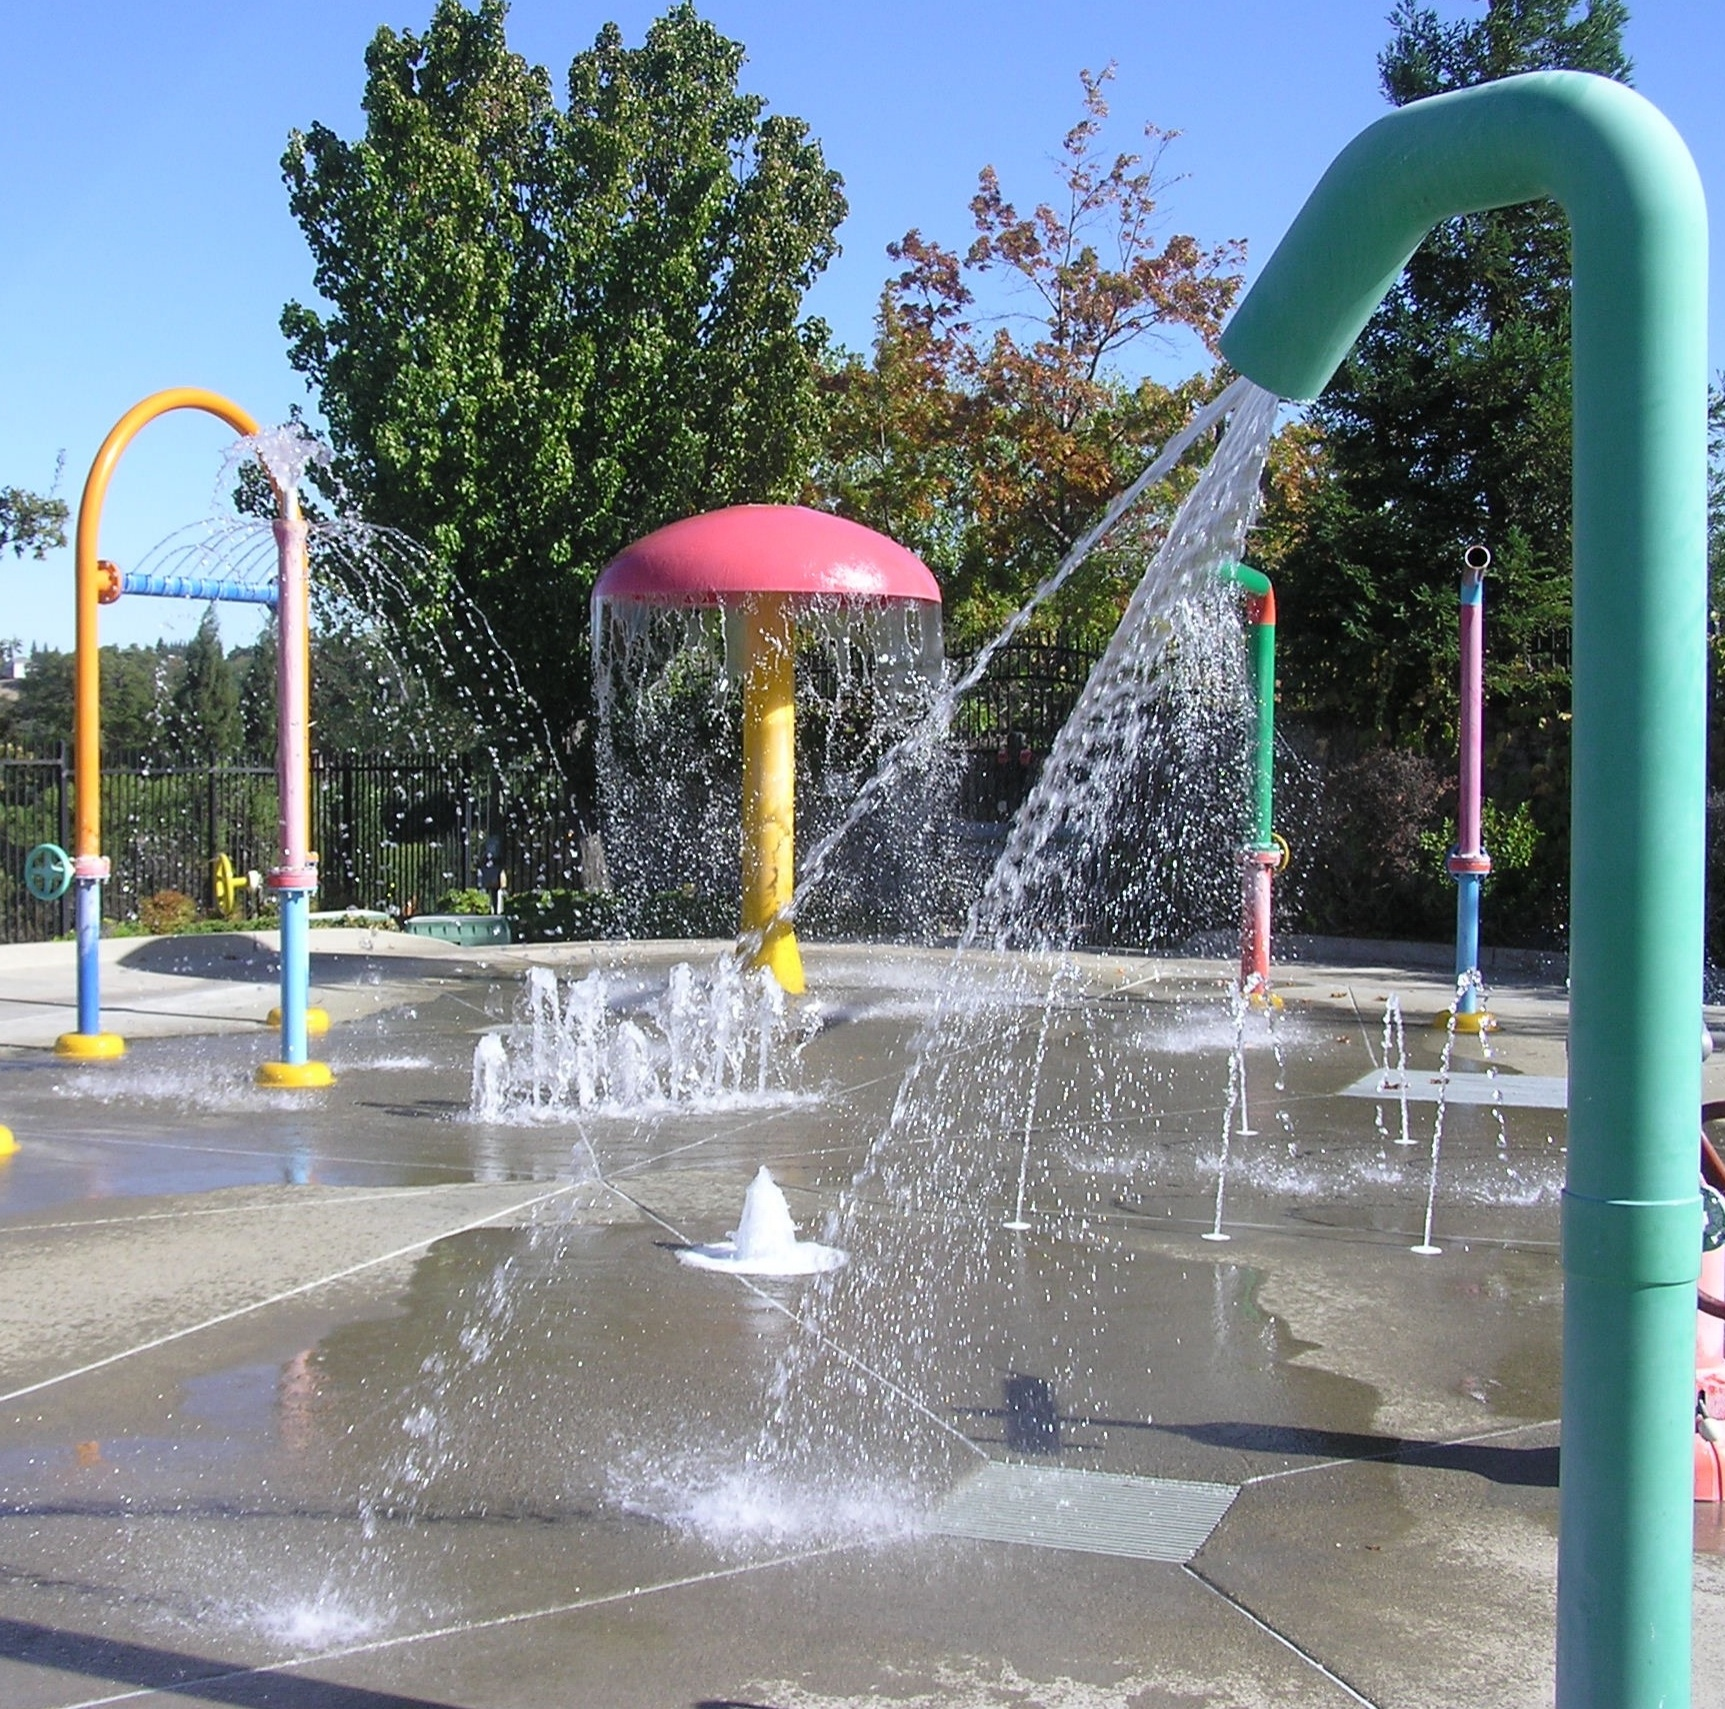 spray park at cal fit kids pool rocklin